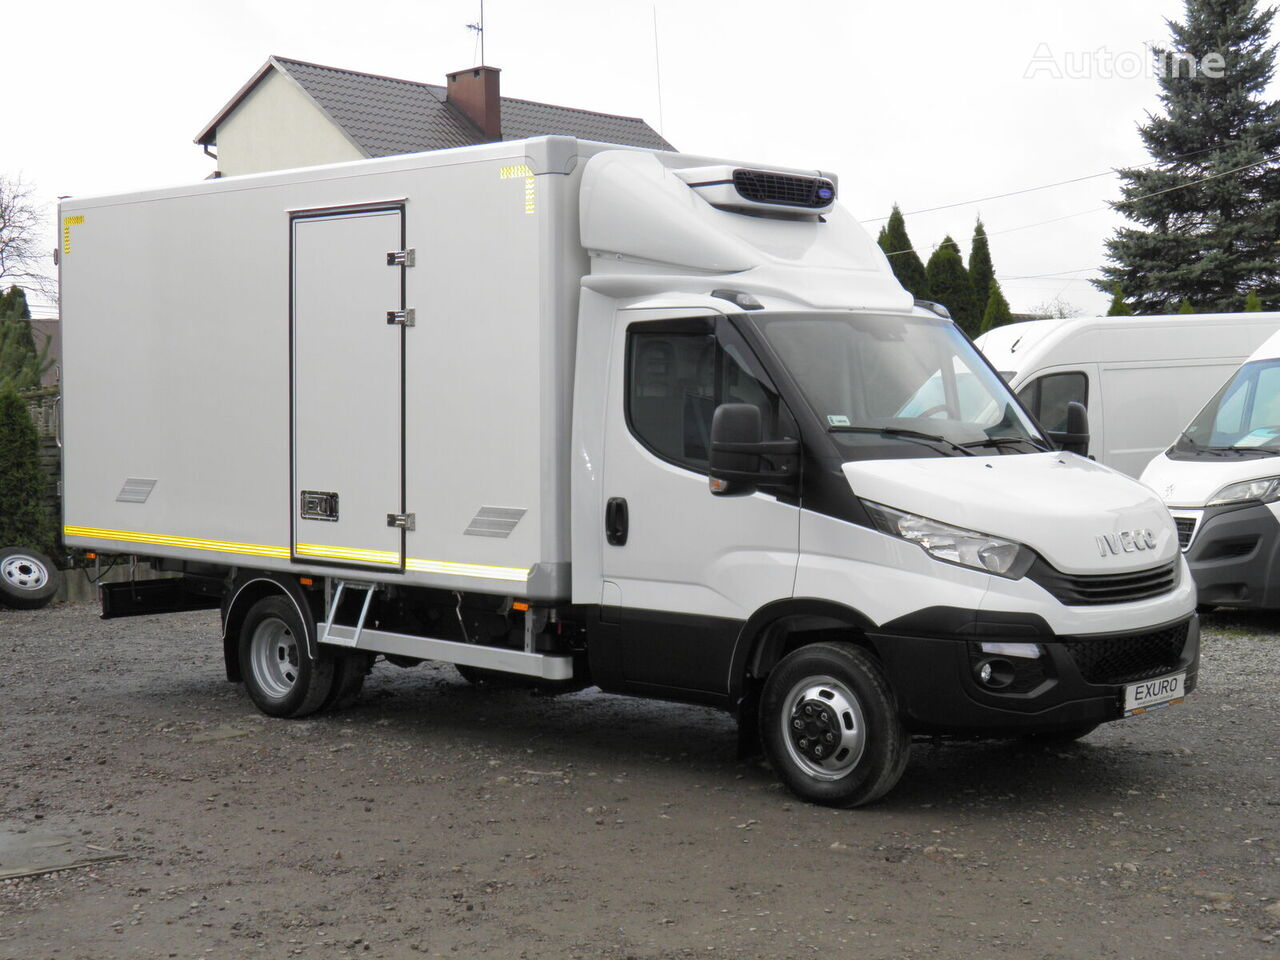 IVECO Daily 50-150 CHŁODNIA 8 PALET CARRIER VIENTO 300 SALON EURO6 AdB refrigerated truck < 3.5t